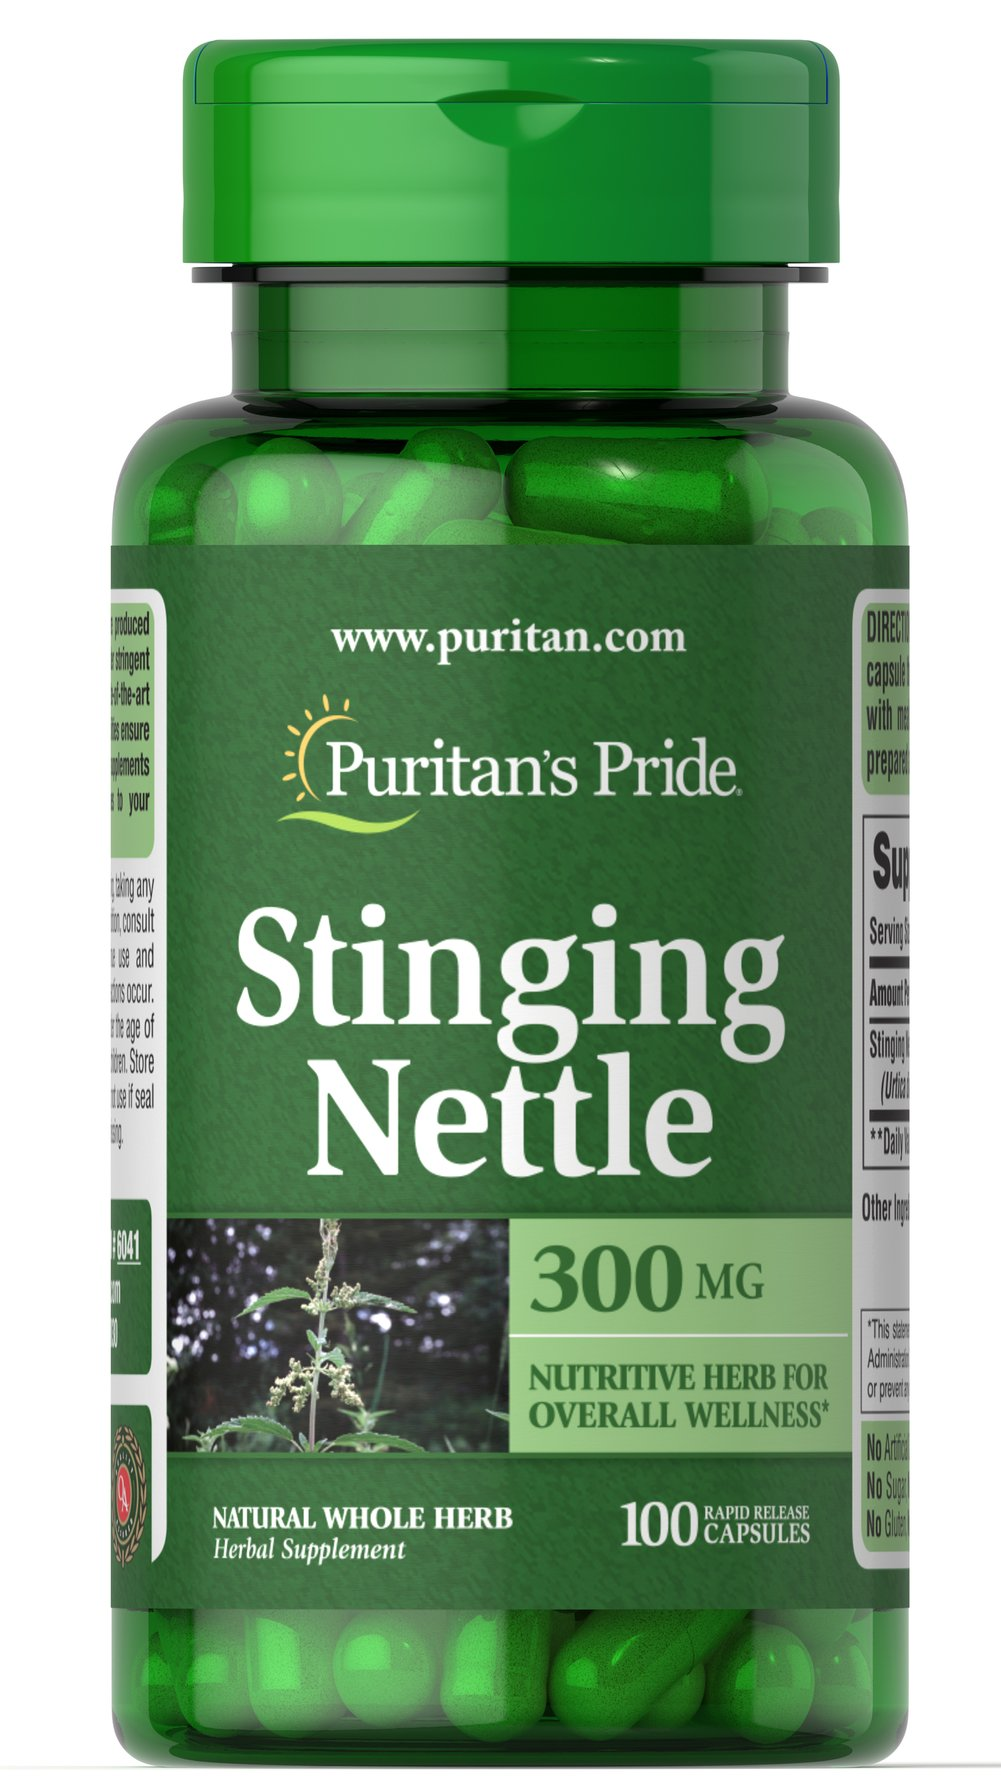 "Stinging Nettle 300 mg <ul><li><span style=""font-family:'Arial','sans-serif';color:windowtext;"">Nutritive herb.</span></li><li><span style=""font-family:'Arial','sans-serif';color:#222222;"">Nettles</span><span style=""font-family:'Arial','sans-serif';color:red;""> </span><span style=""font-family:'Arial','sans-serif';color:windowtext;"""